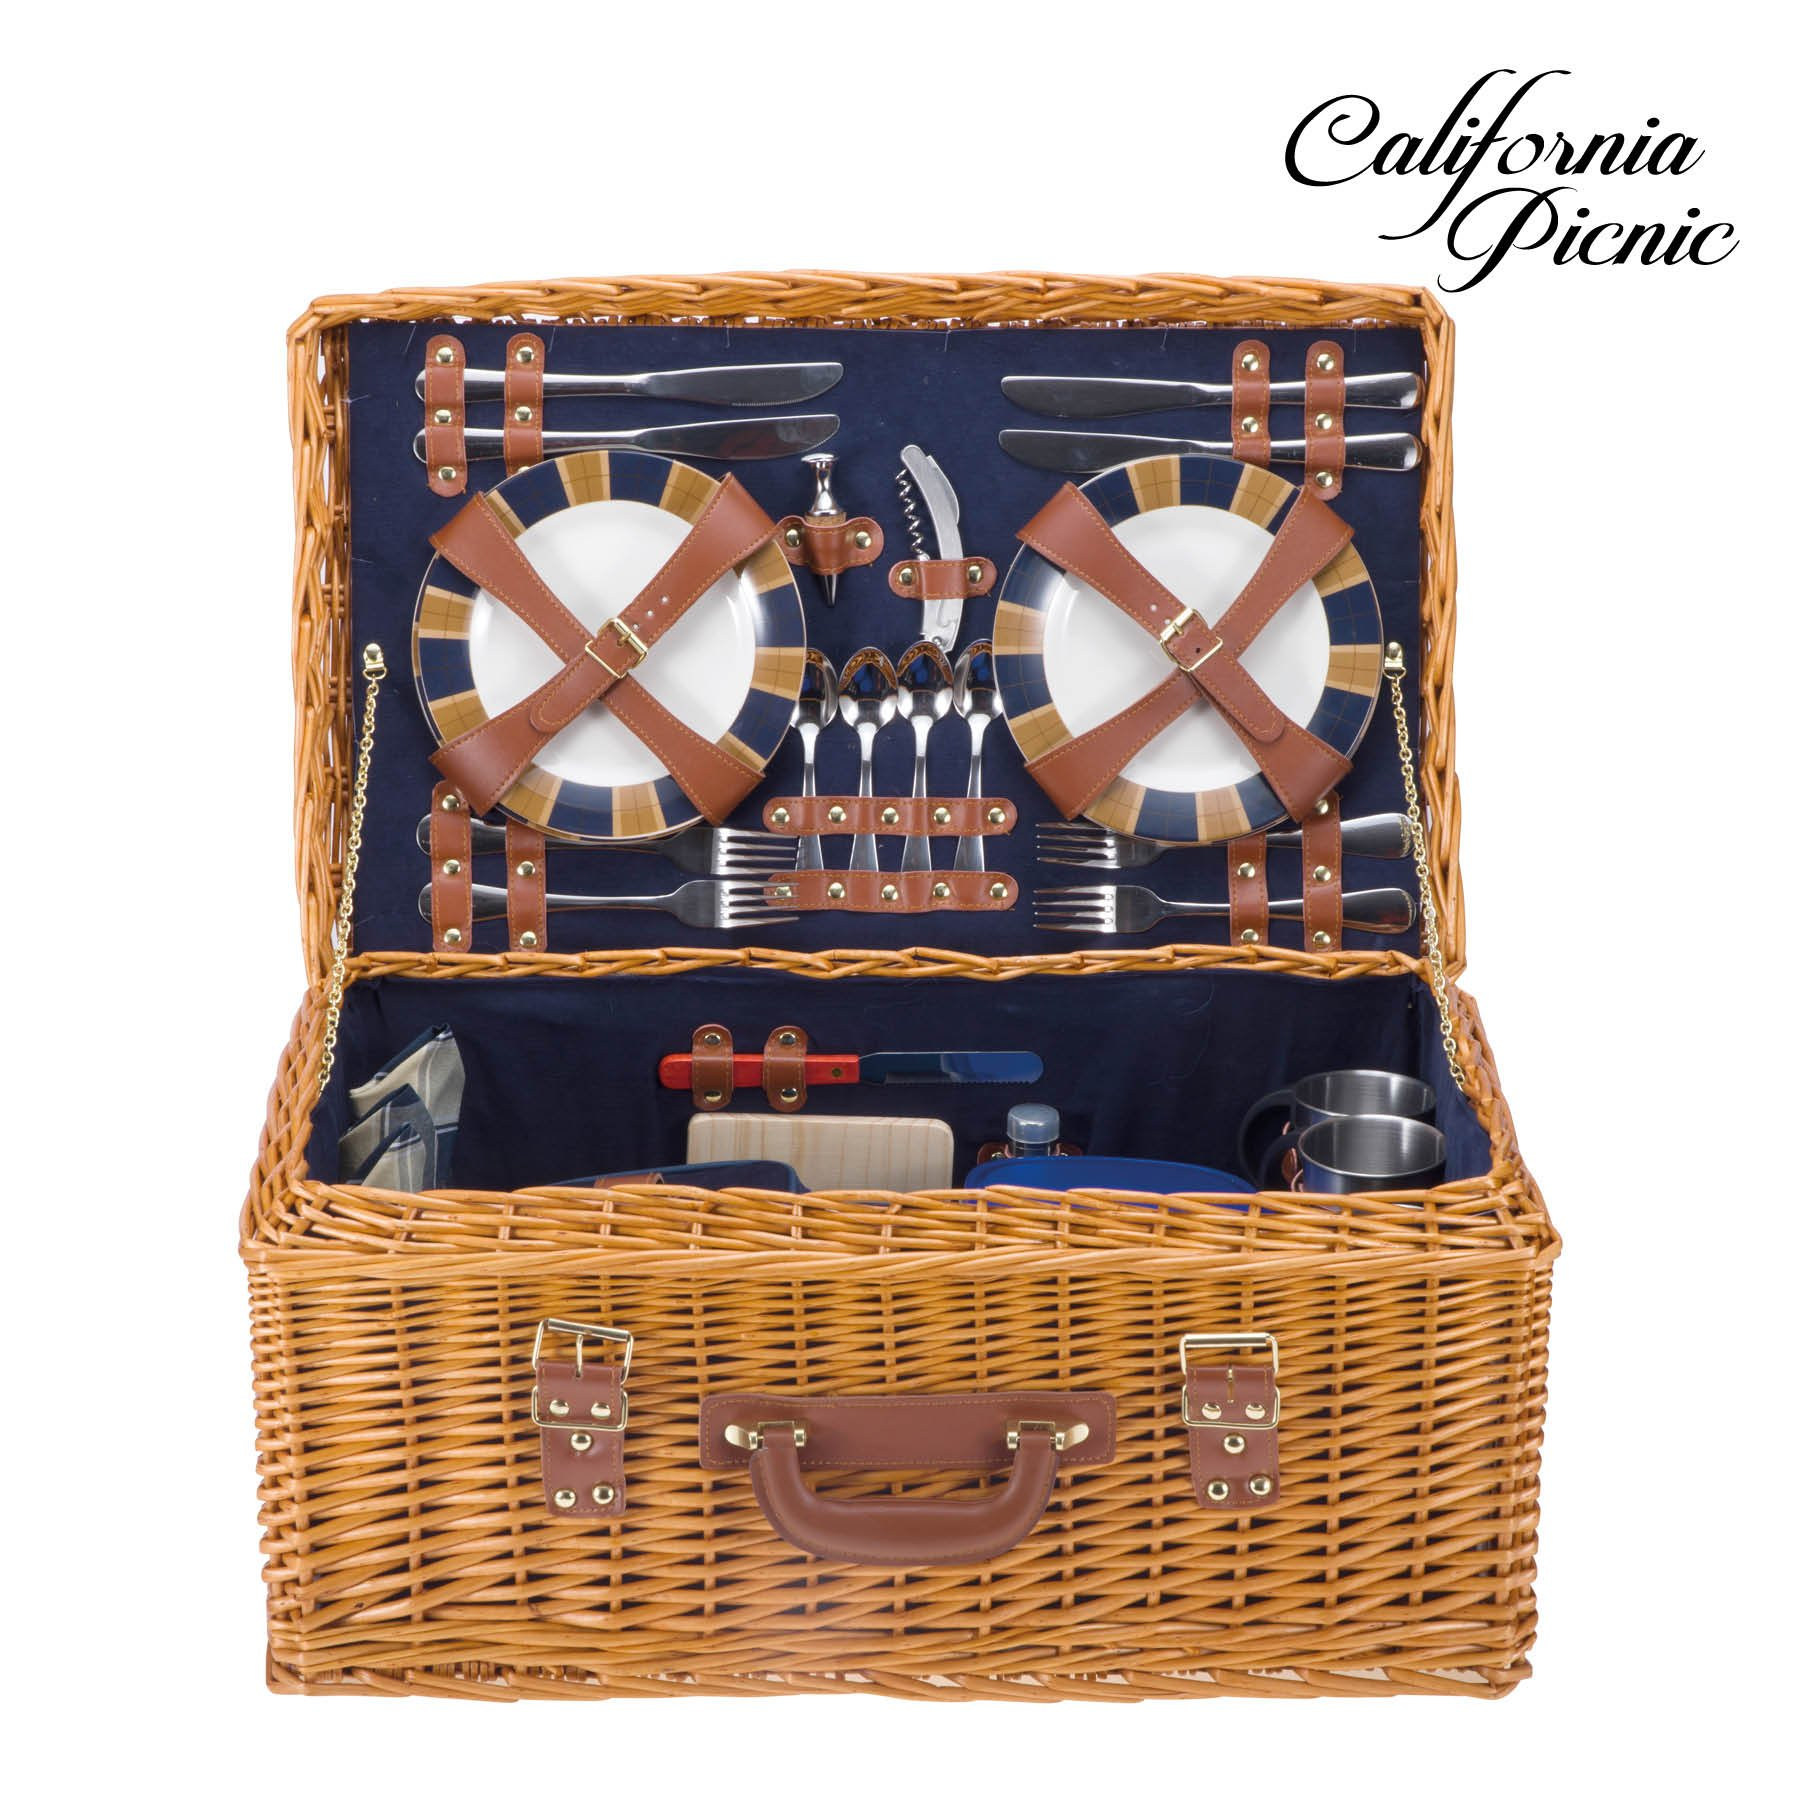 Picnic Basket Set DELUXE | Marshall Collection | 4 Person Coffee Service Set | Picnic Hamper Set Waterproof Picnic Blanket Ceramic Plates Metal Flatware Wine Glasses Bottle Opener | Vacuum Flask by CALIFORNIA PICNIC